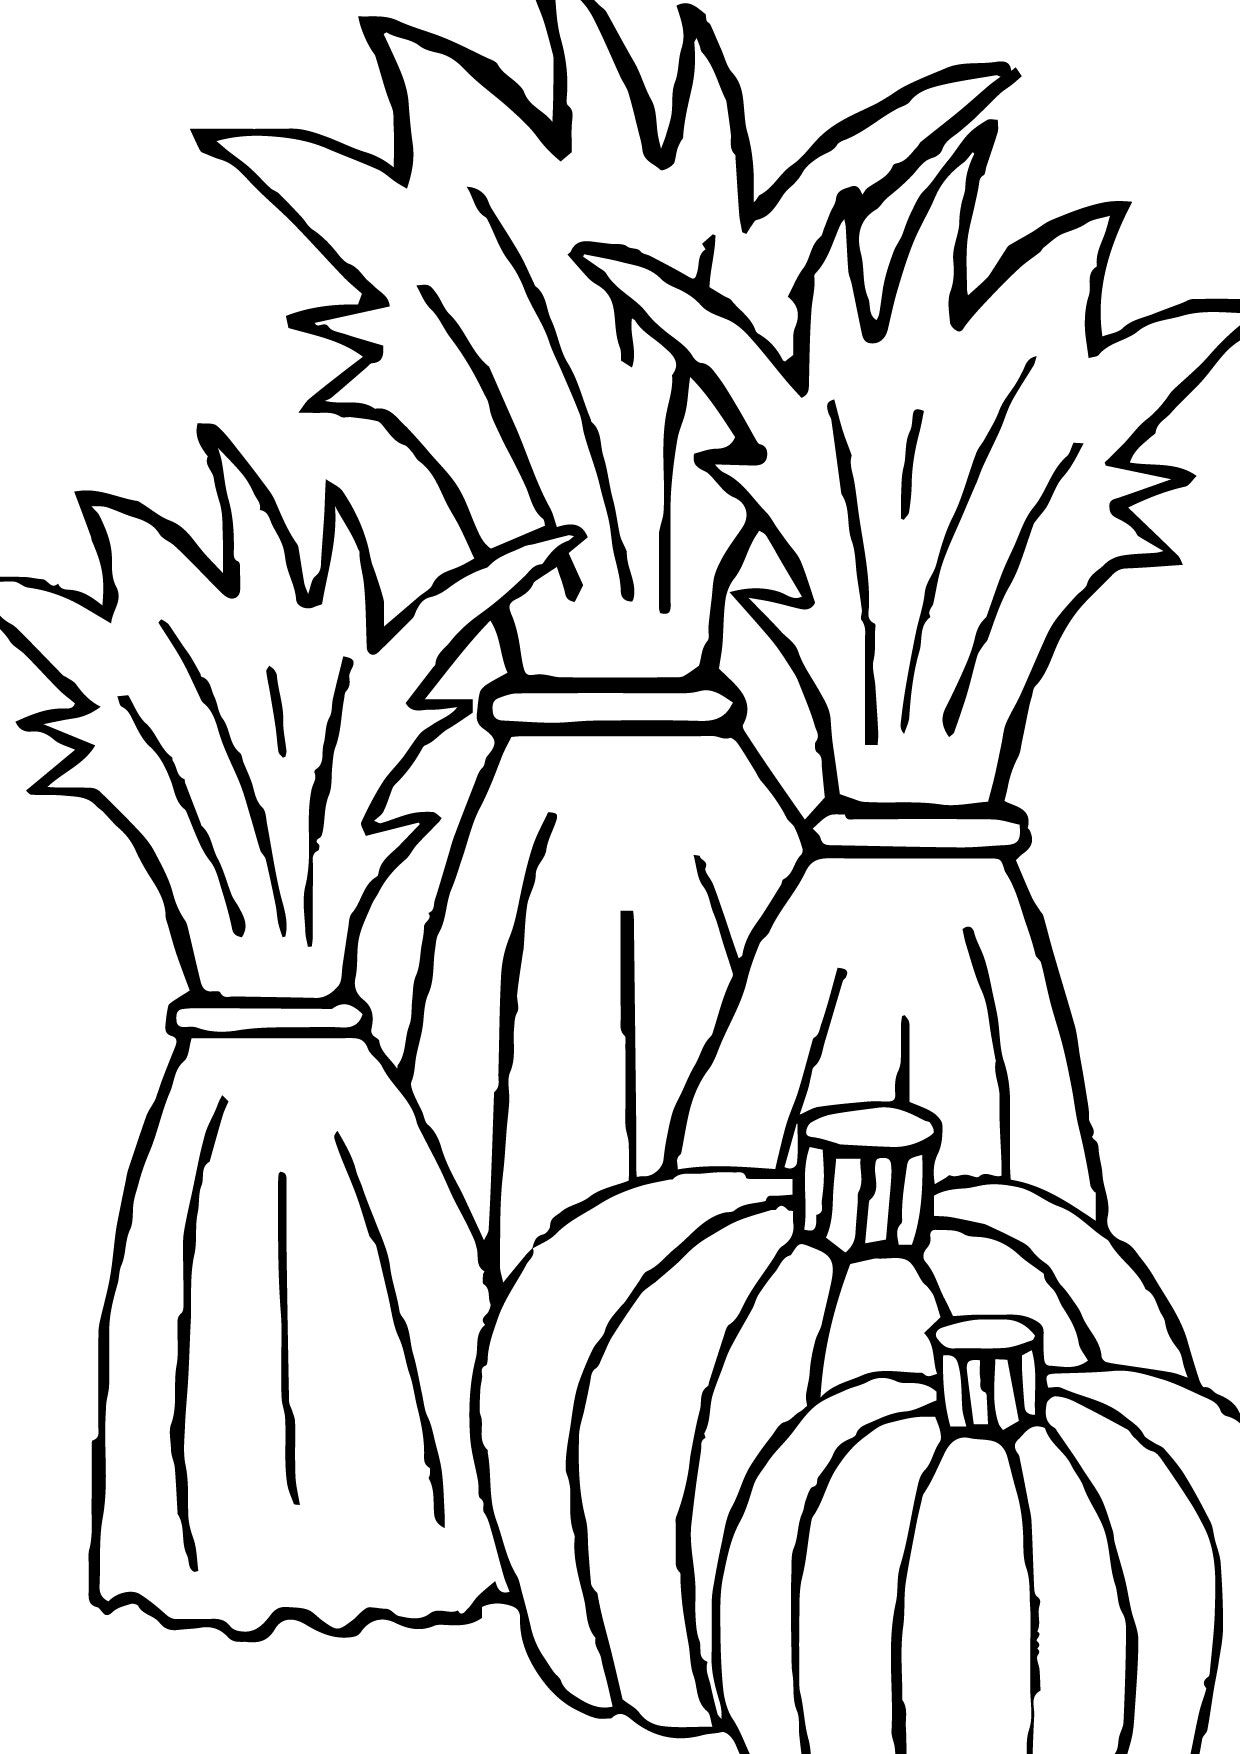 1240x1754 Awesome Corn Stalk Coloring Page Coloring